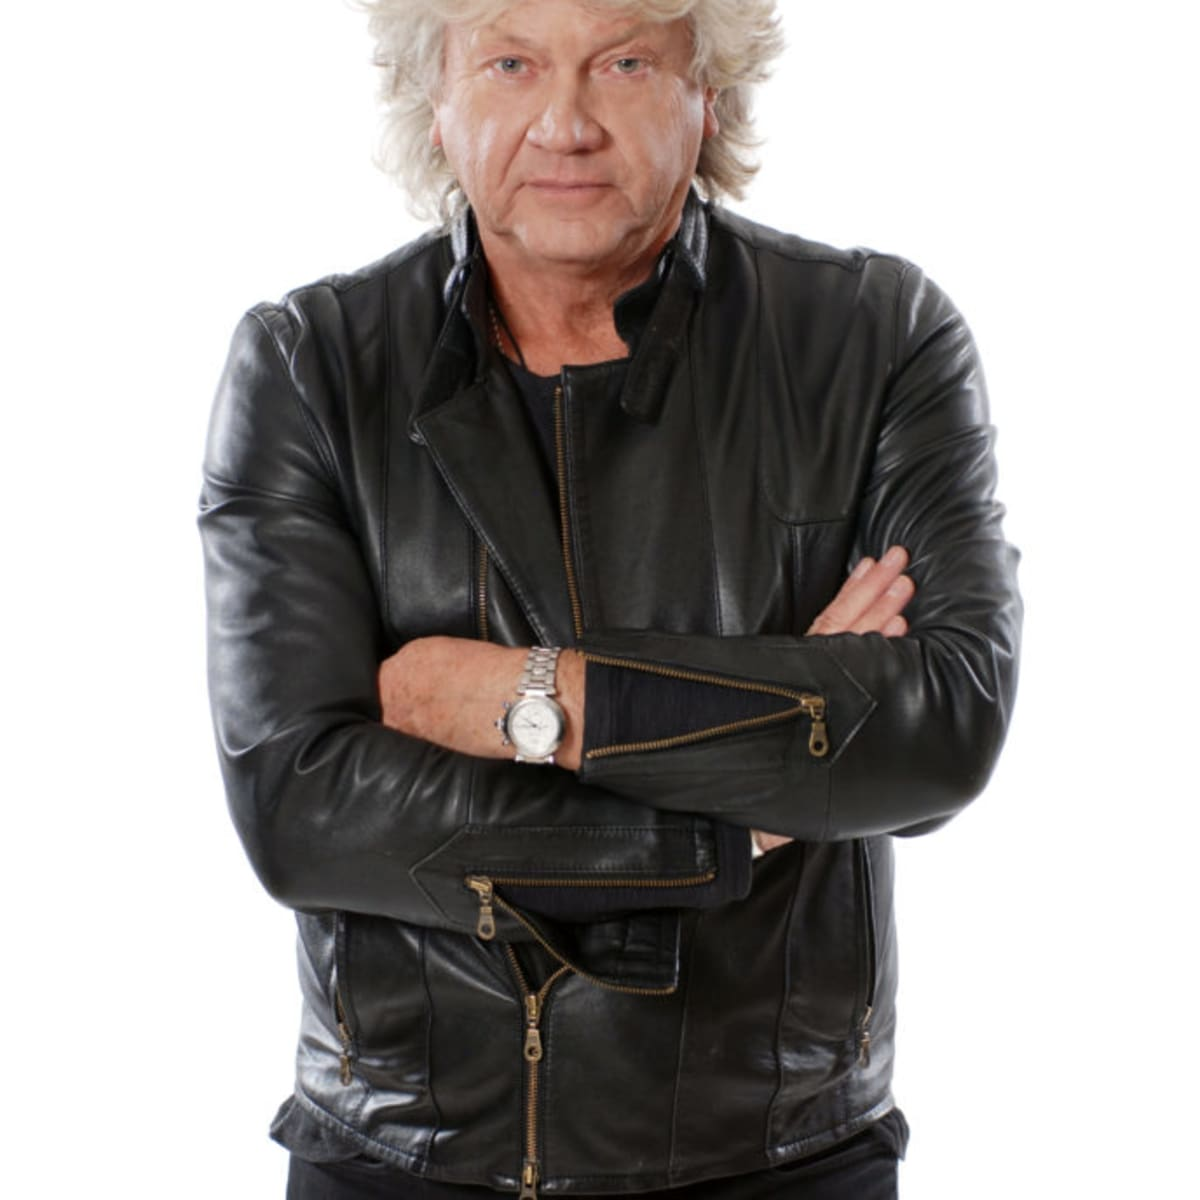 John Lodge Of The Moody Blues Is The Guest On The Goldmine Magazine Podcast Goldmine Magazine Record Collector Music Memorabilia